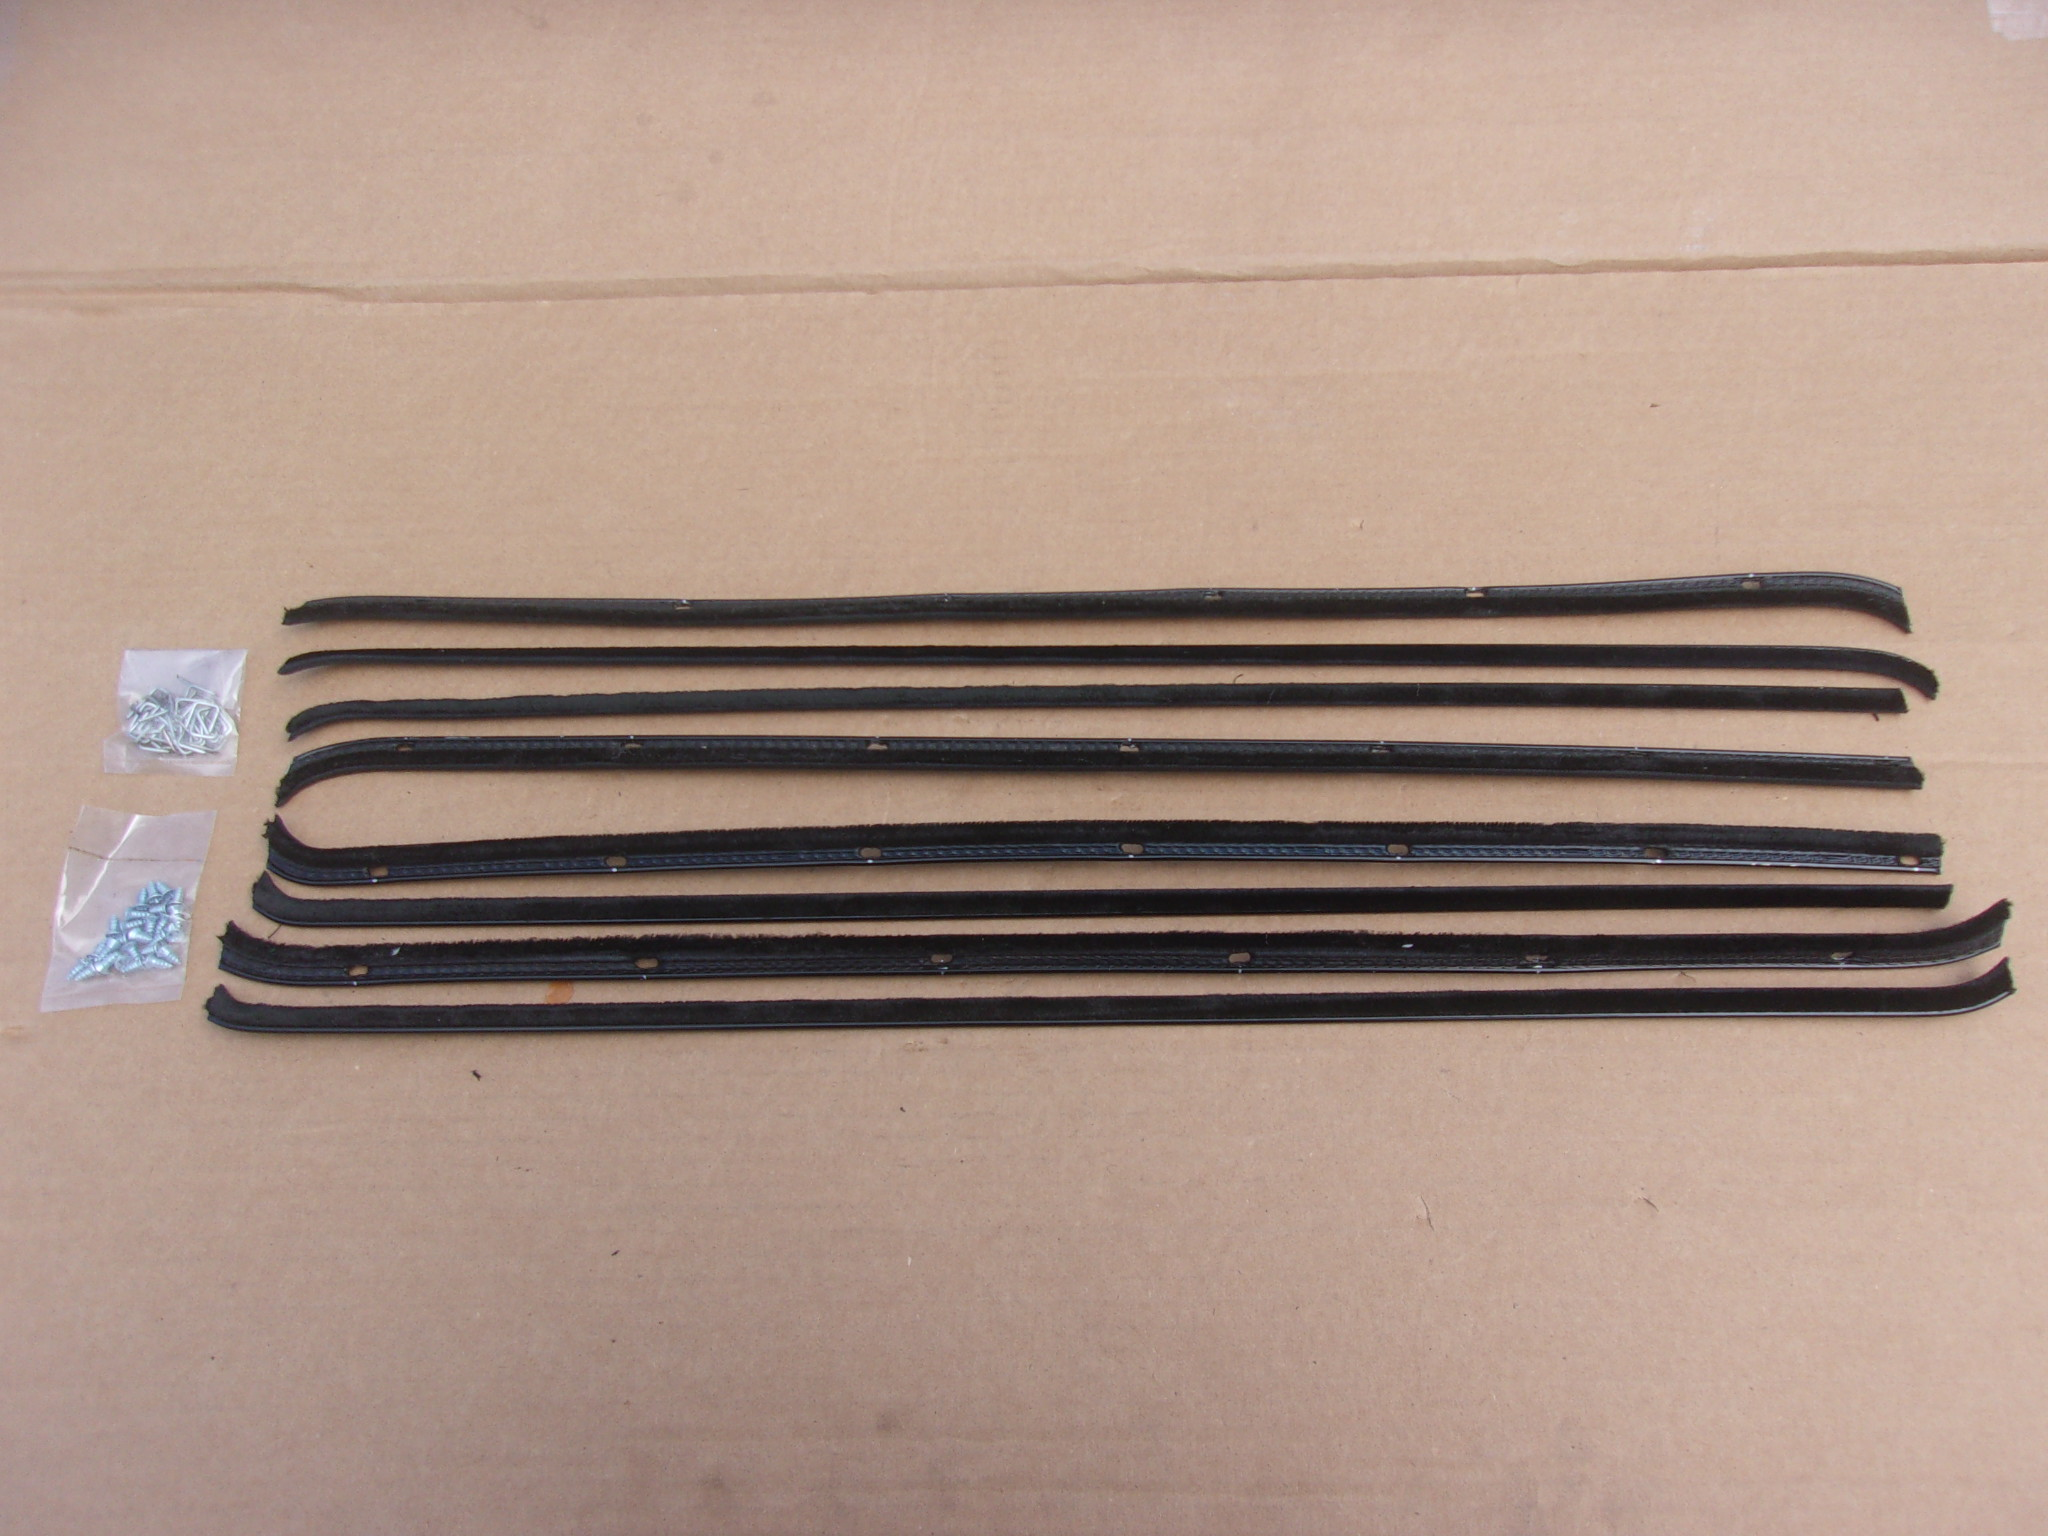 55-56 PLYMOUTH/DODGE 4 DOOR SEDAN BELT CATWHISKERS